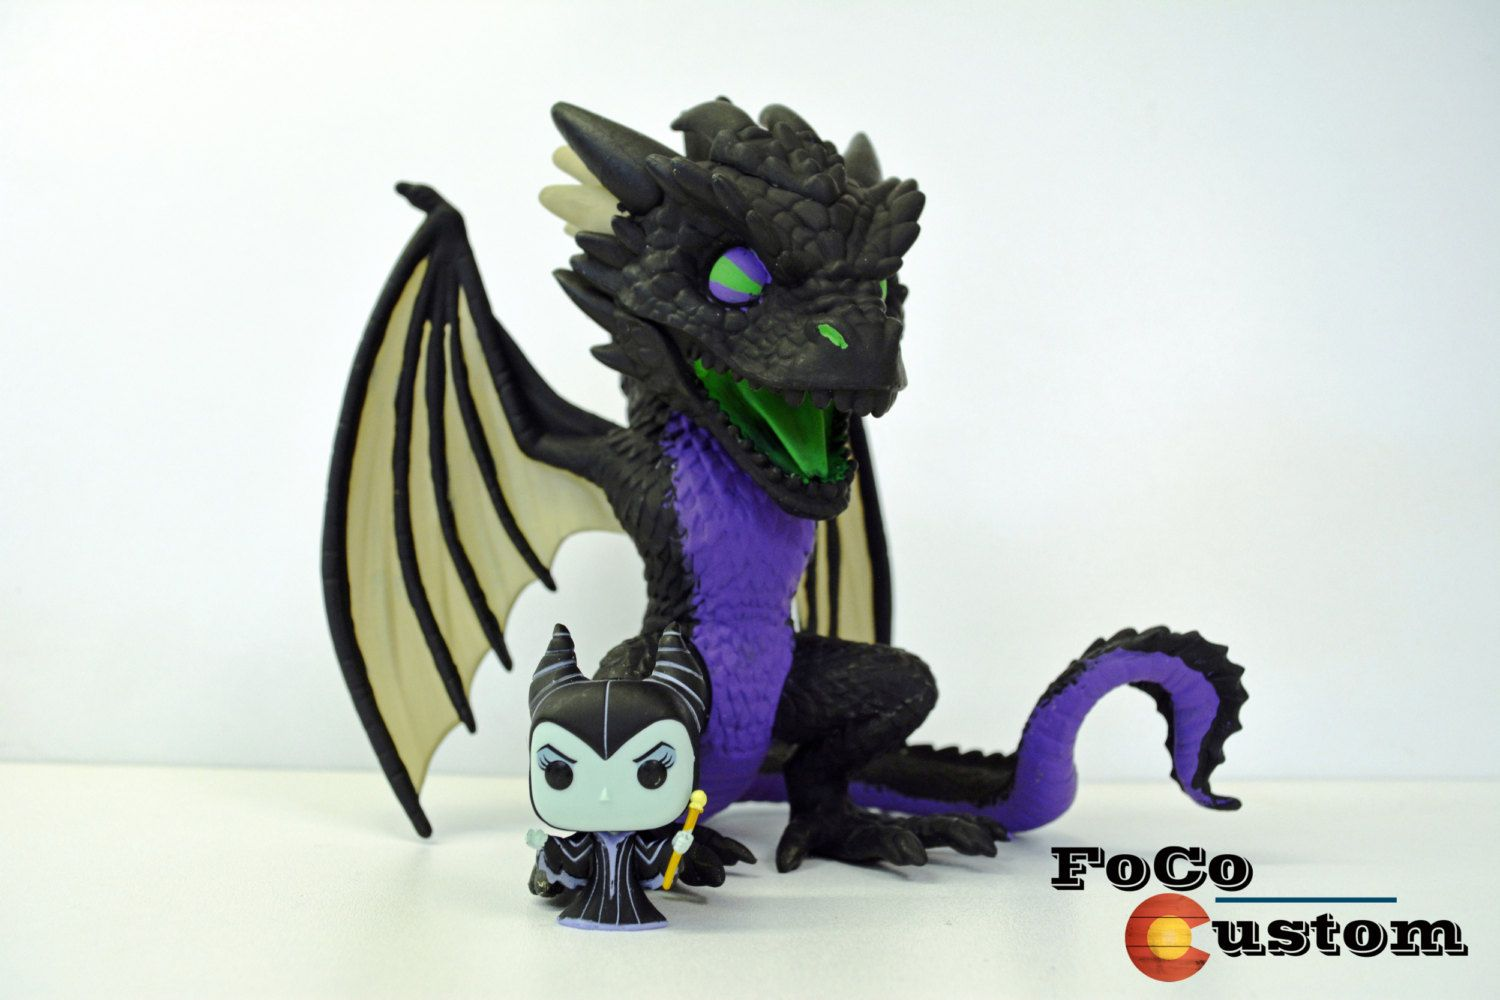 Funko Pop Maleficent Custom Funko Pop Maleficent Dragon